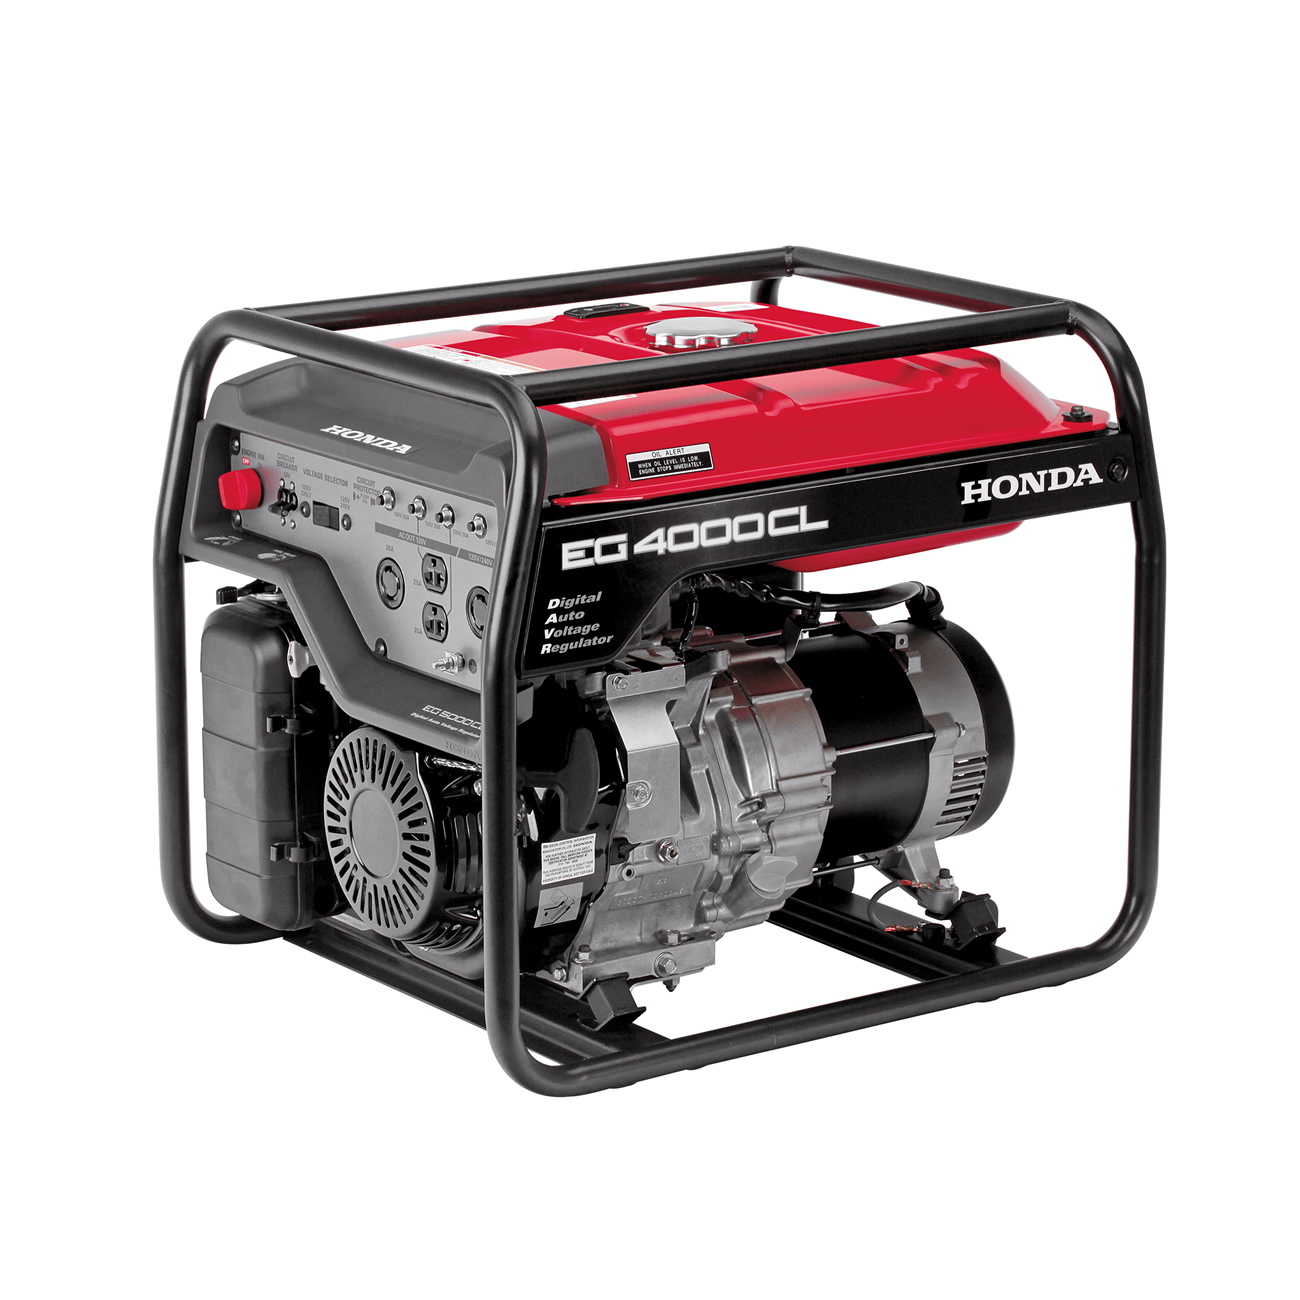 Natural Gas Generator For Home With Honda Engine